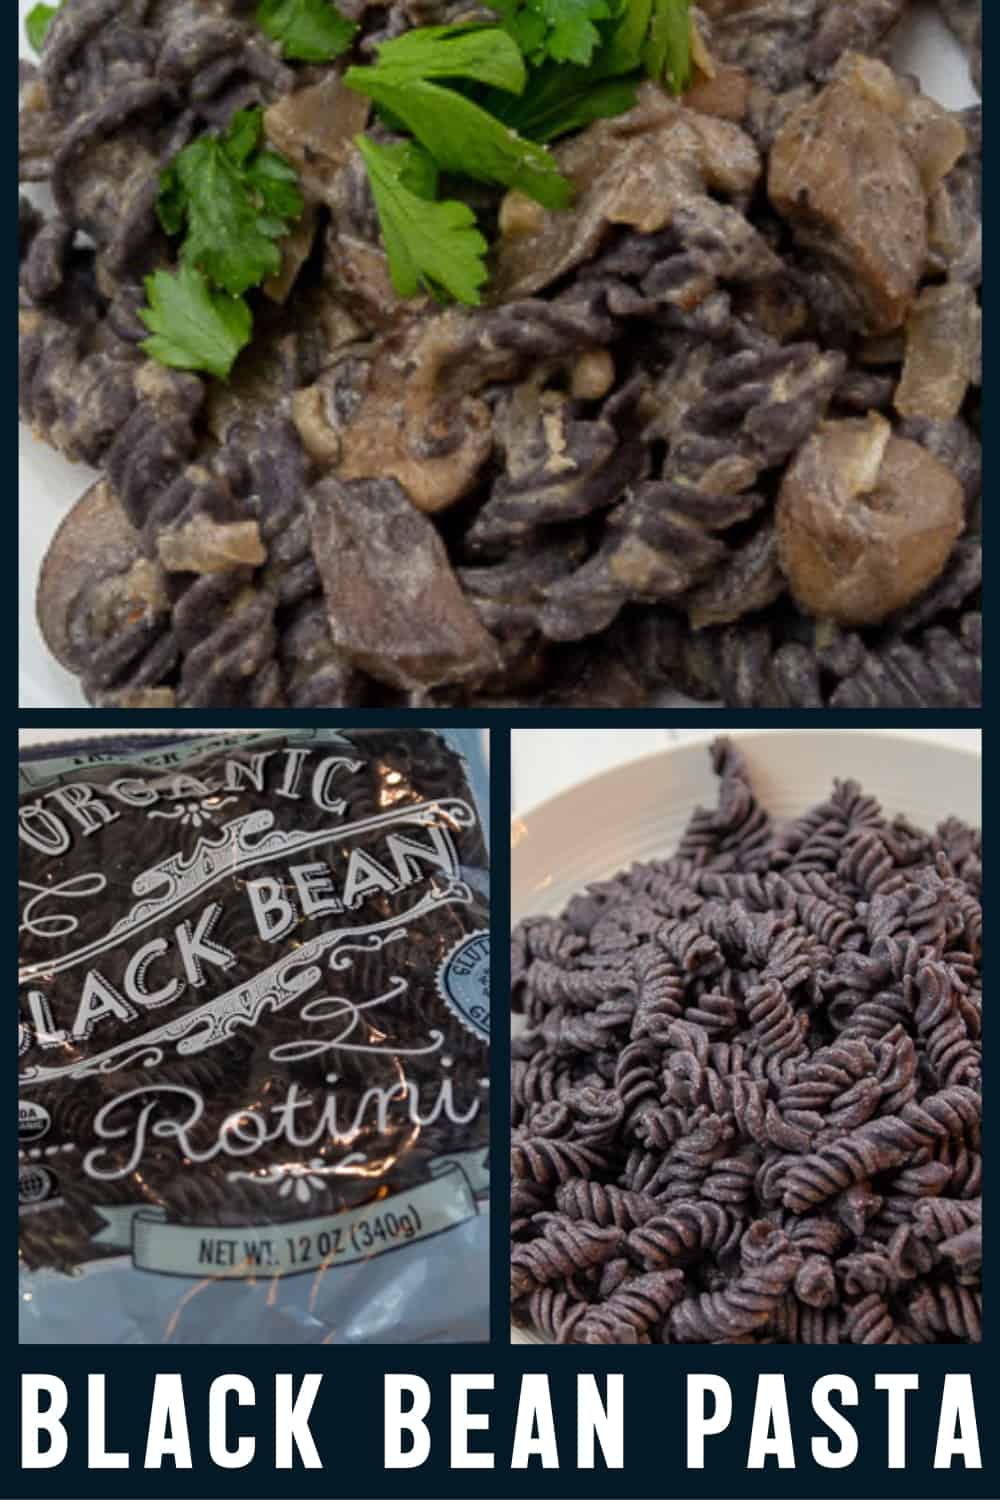 Trader Joe's Black Bean Pasta with Mushroom Cream Sauce